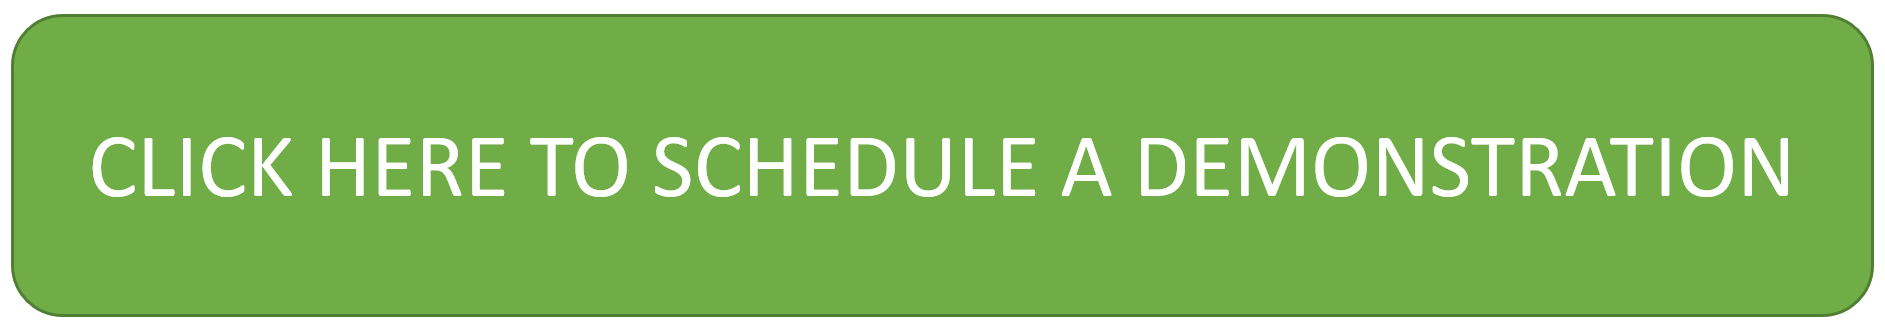 schedule-a-demo-button